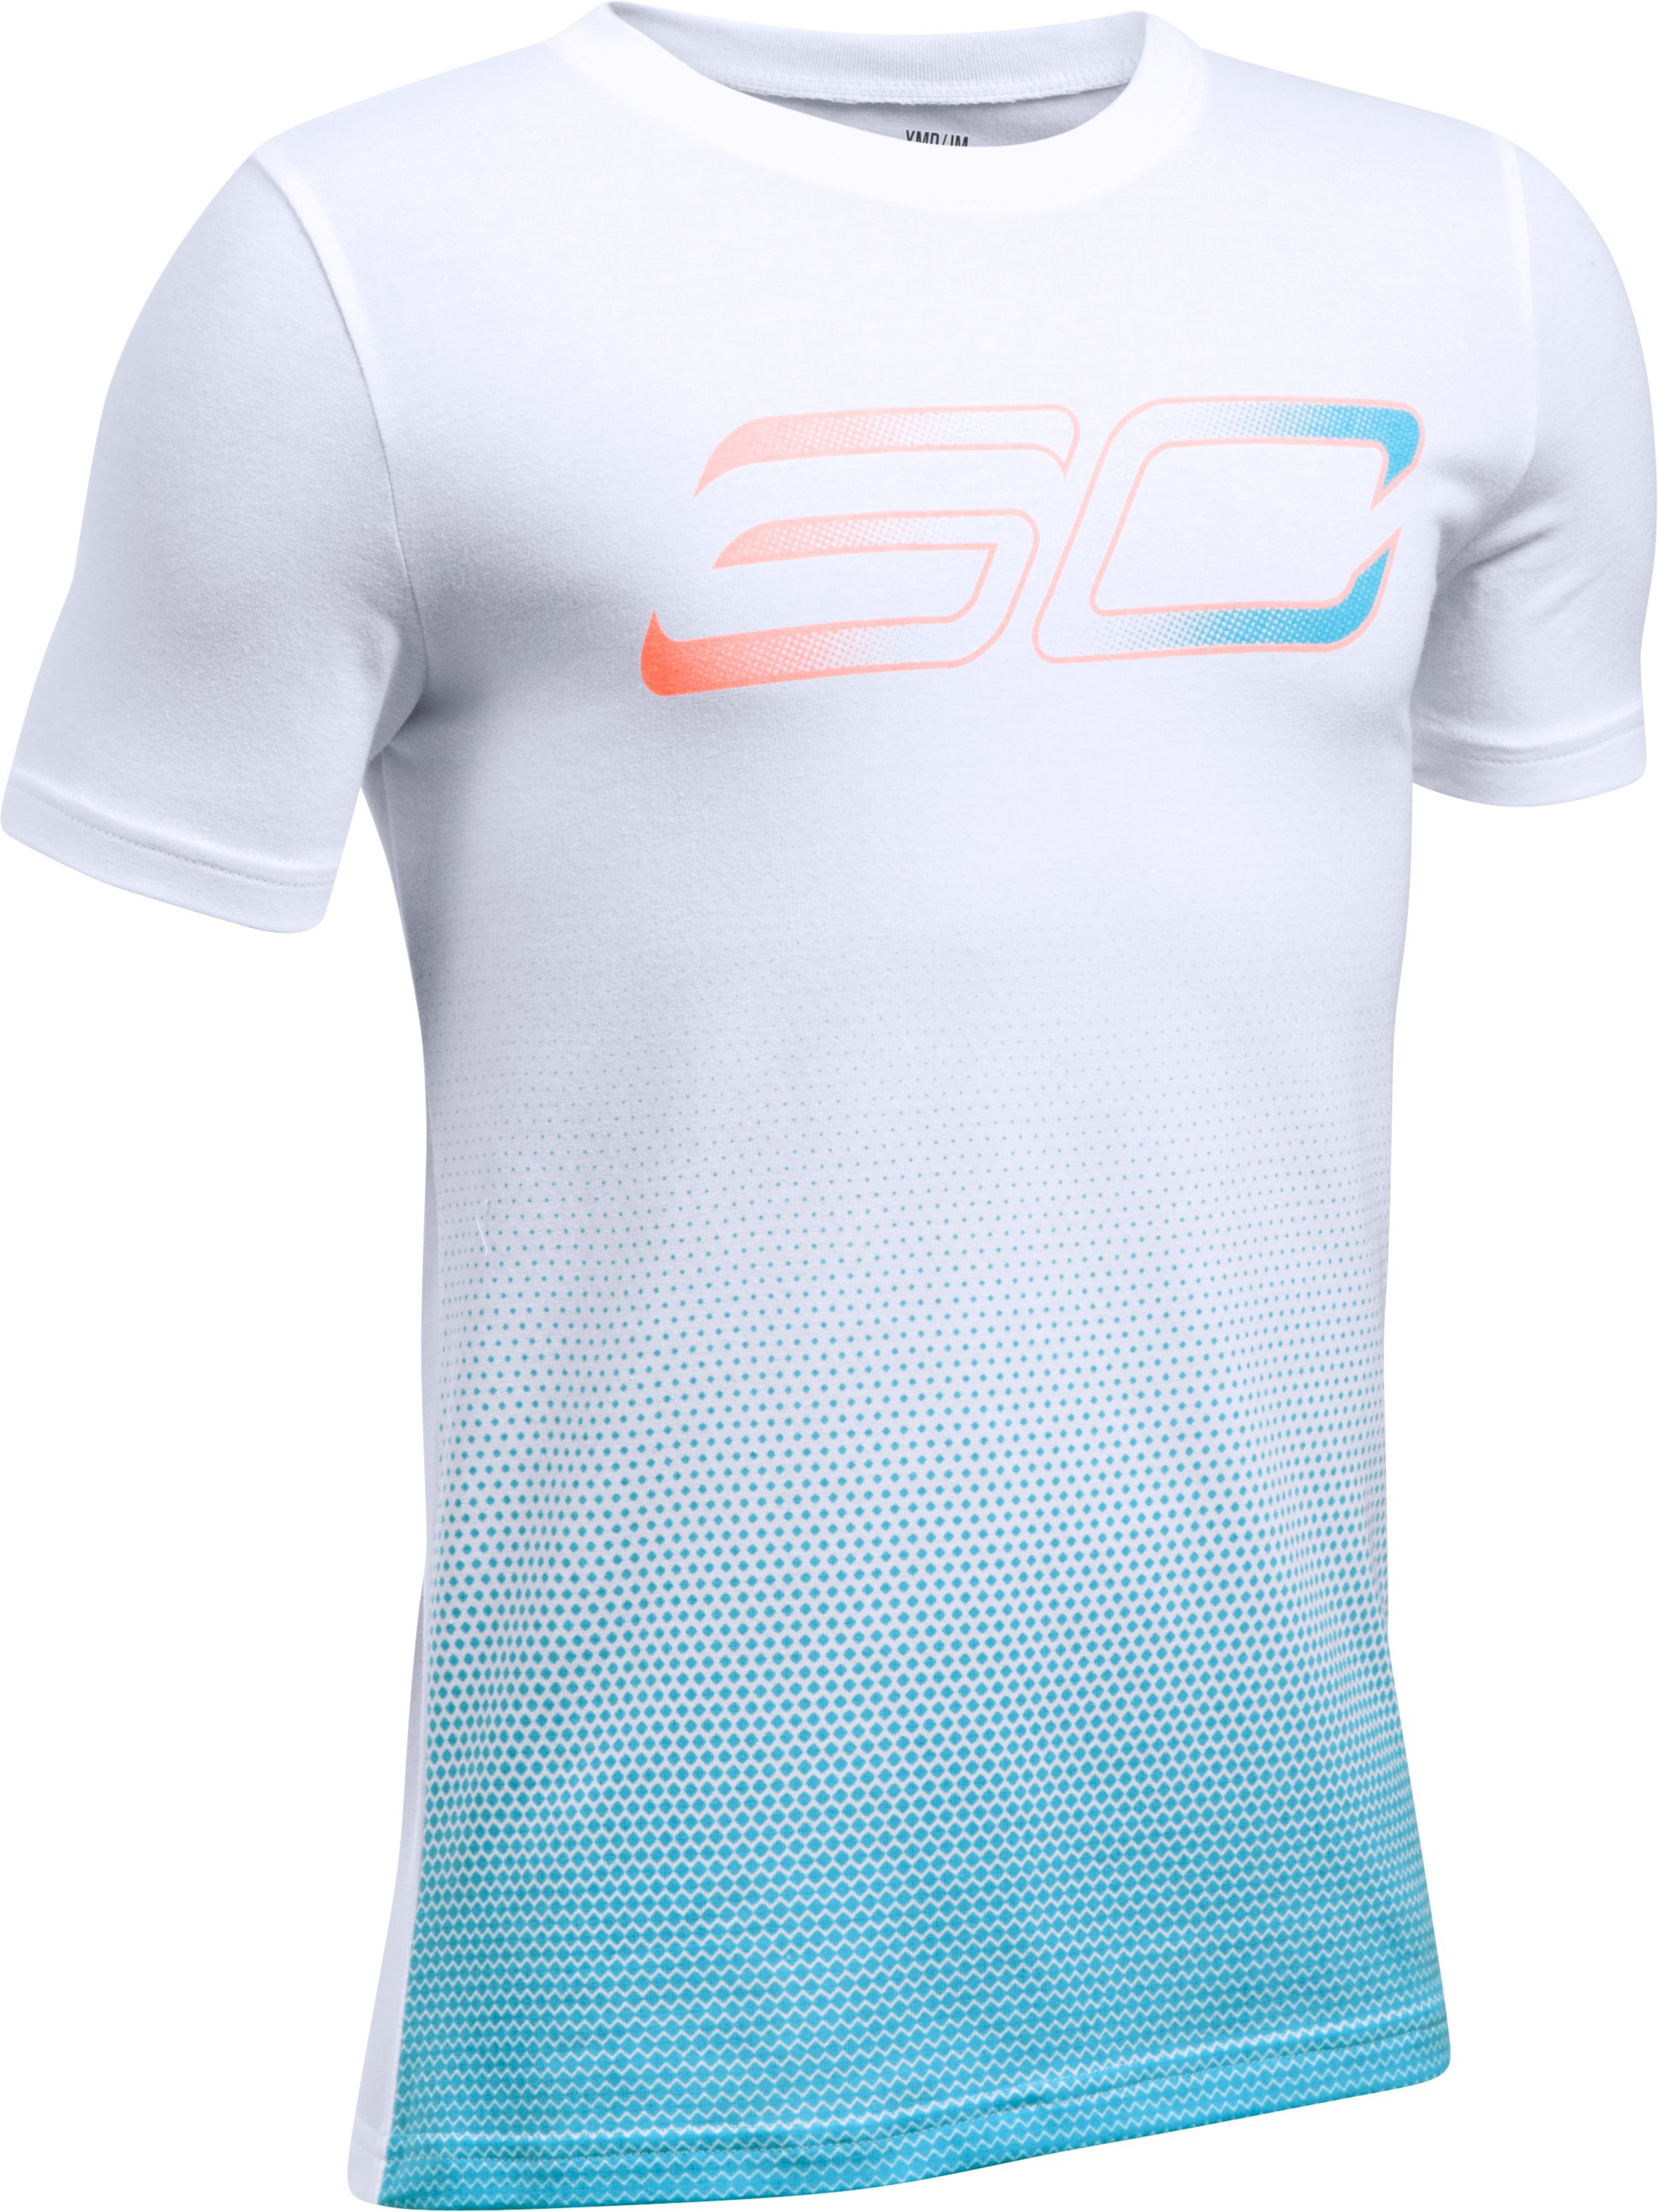 Boys' SC30 Player Fade Short Sleeve T-Shirt, White,